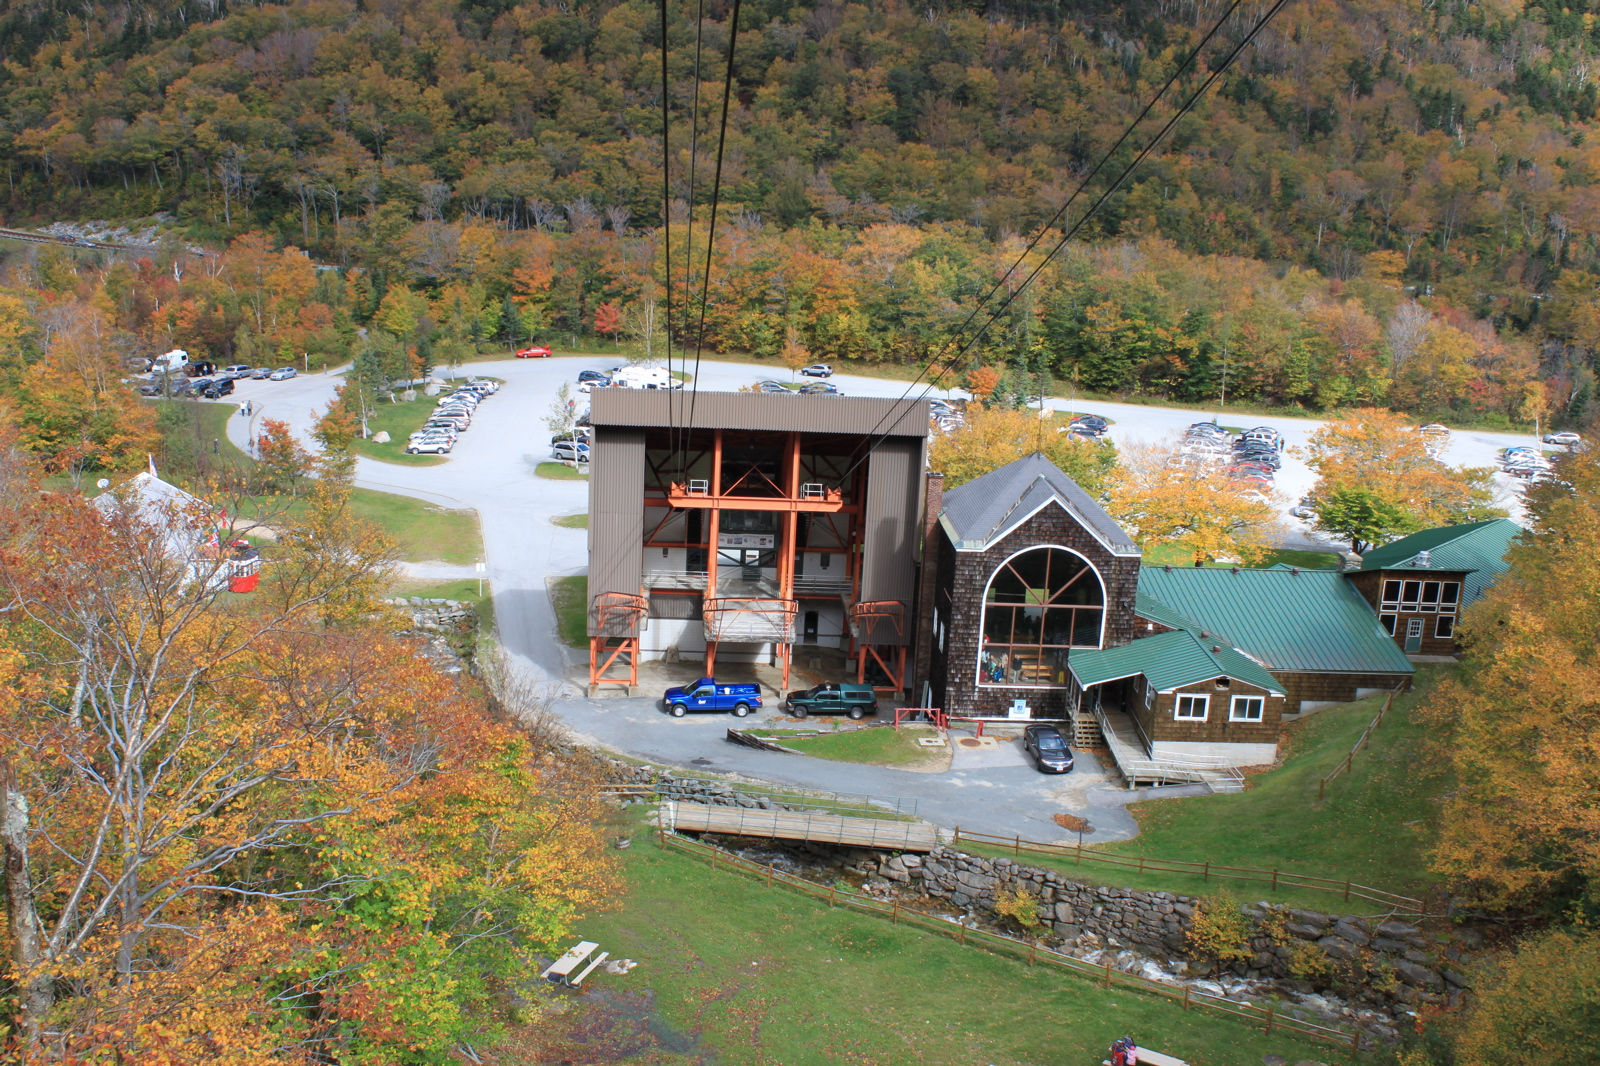 Cannon Mountain Aerial Tramway - White Mountains, New Hampshire